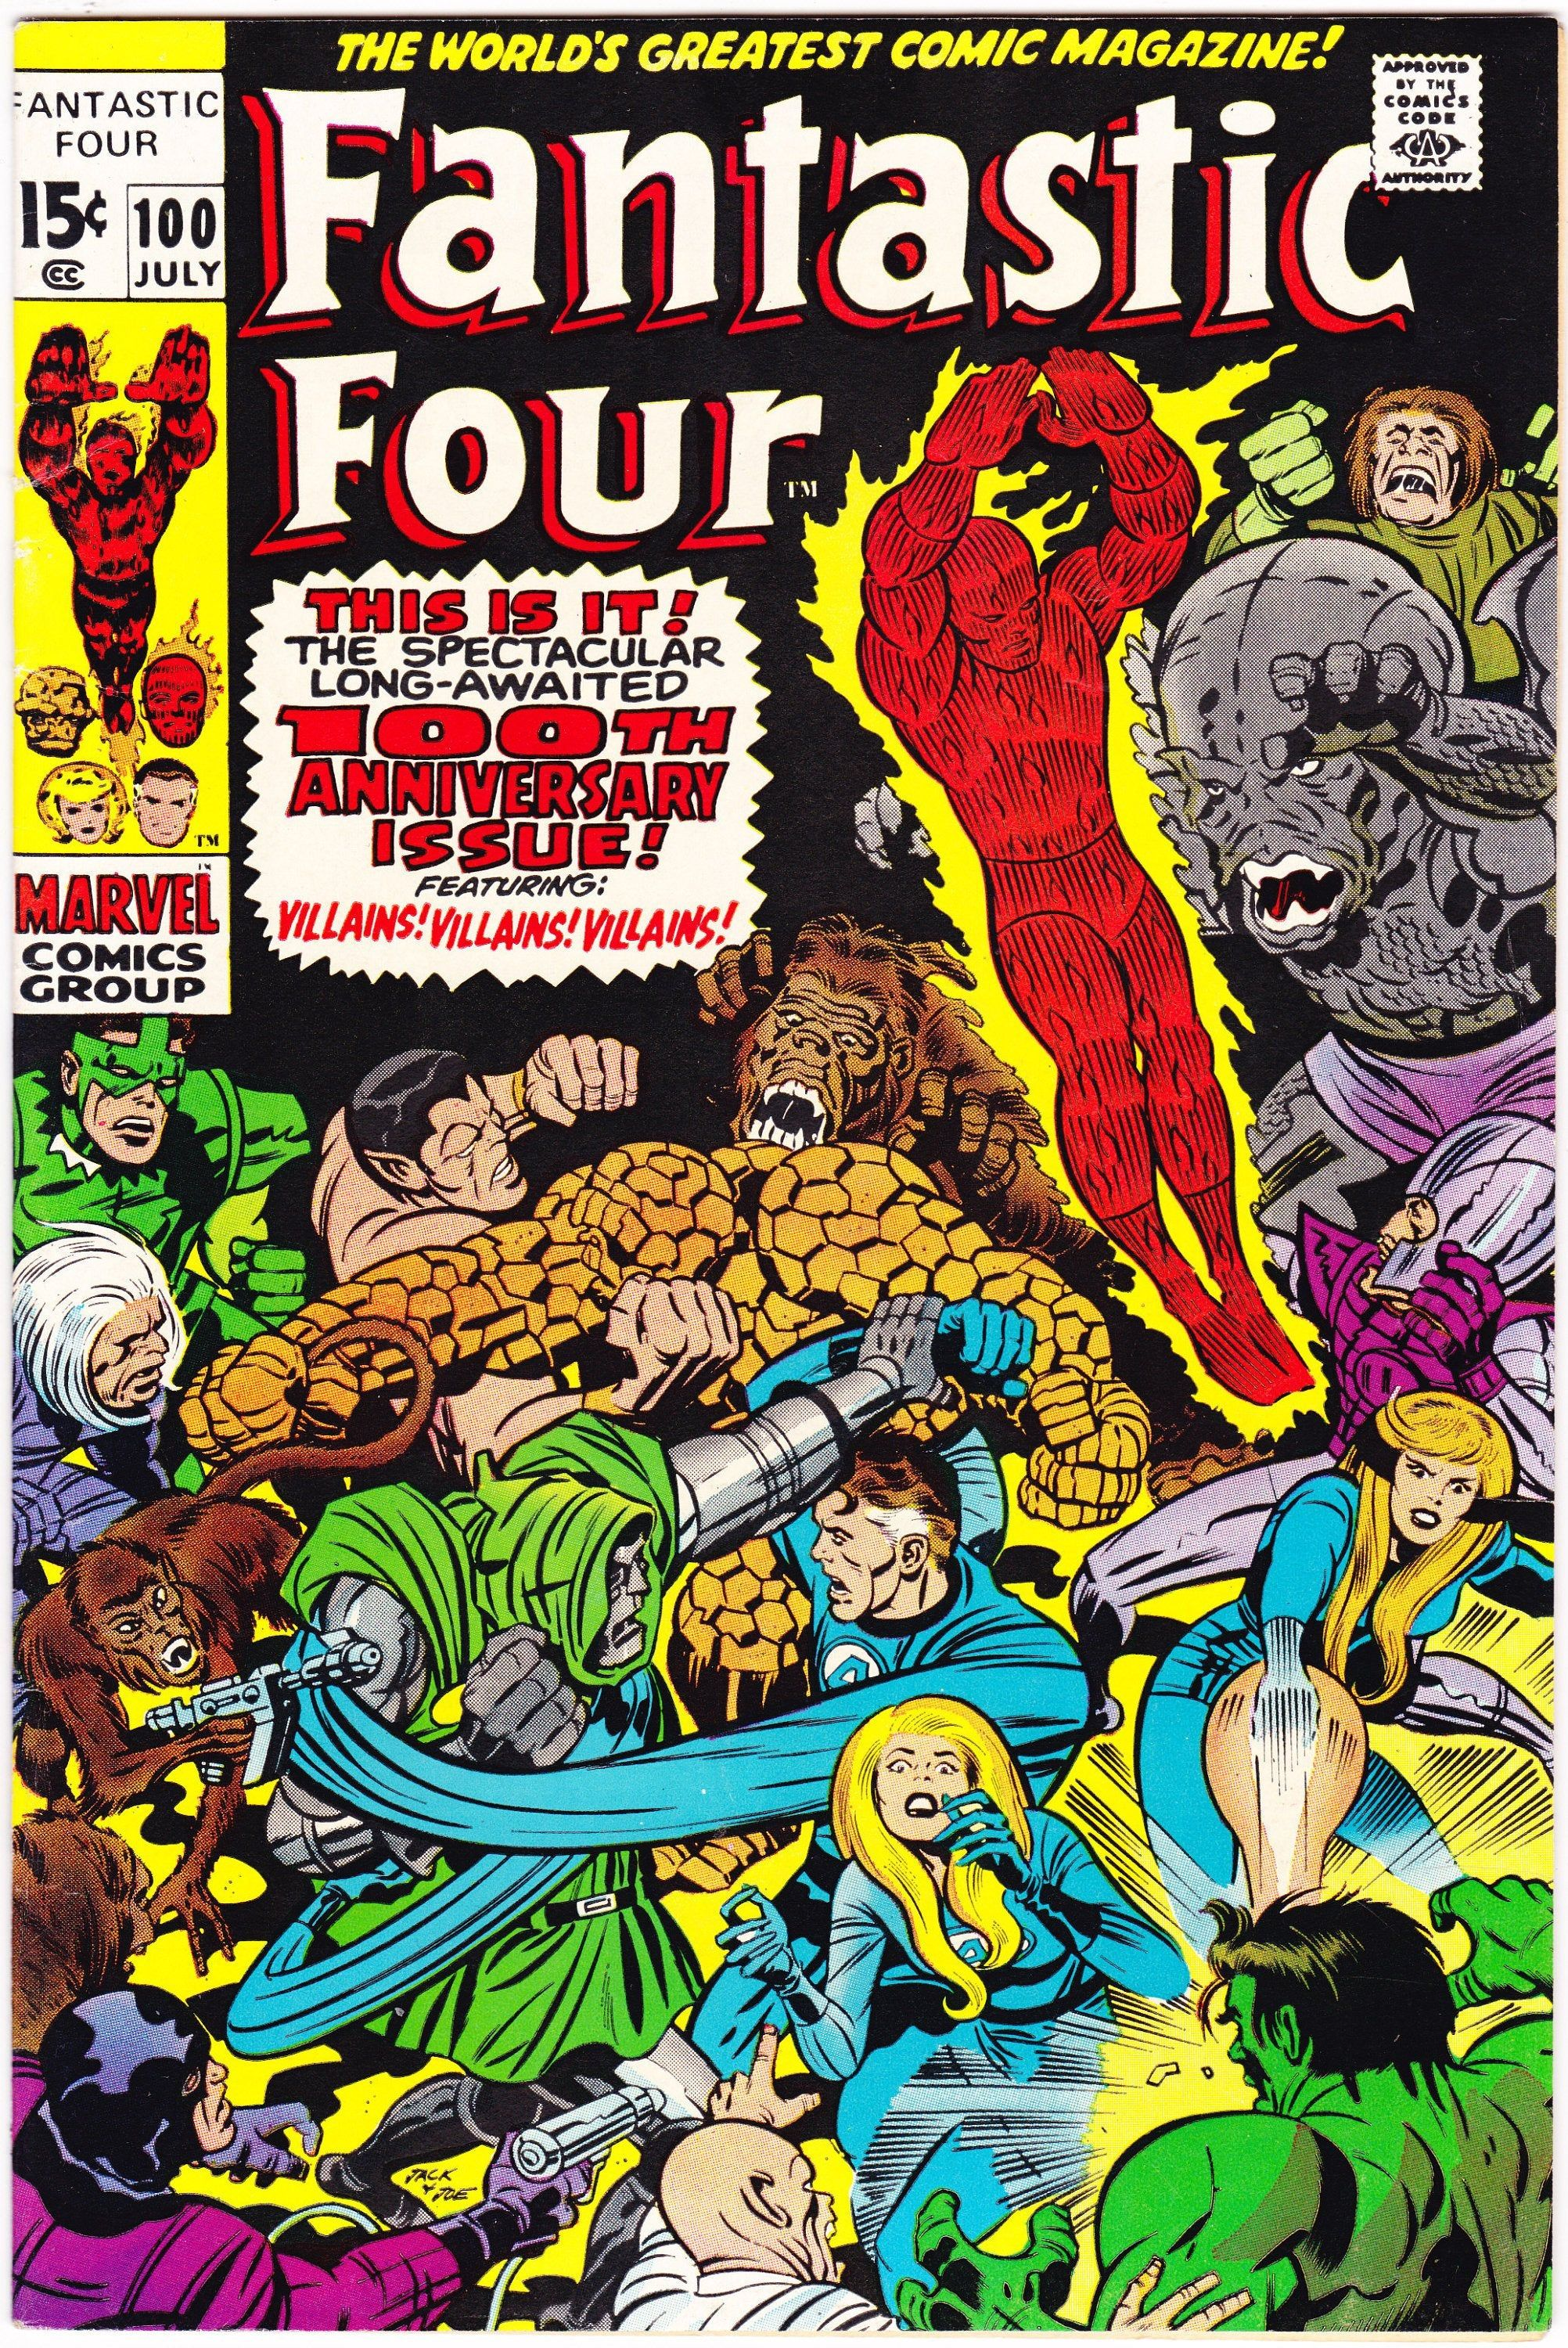 Fantastic Four 100 Comics, Gifts, Books. 1970 Marvel, VF+ (8.5) #comicbooks